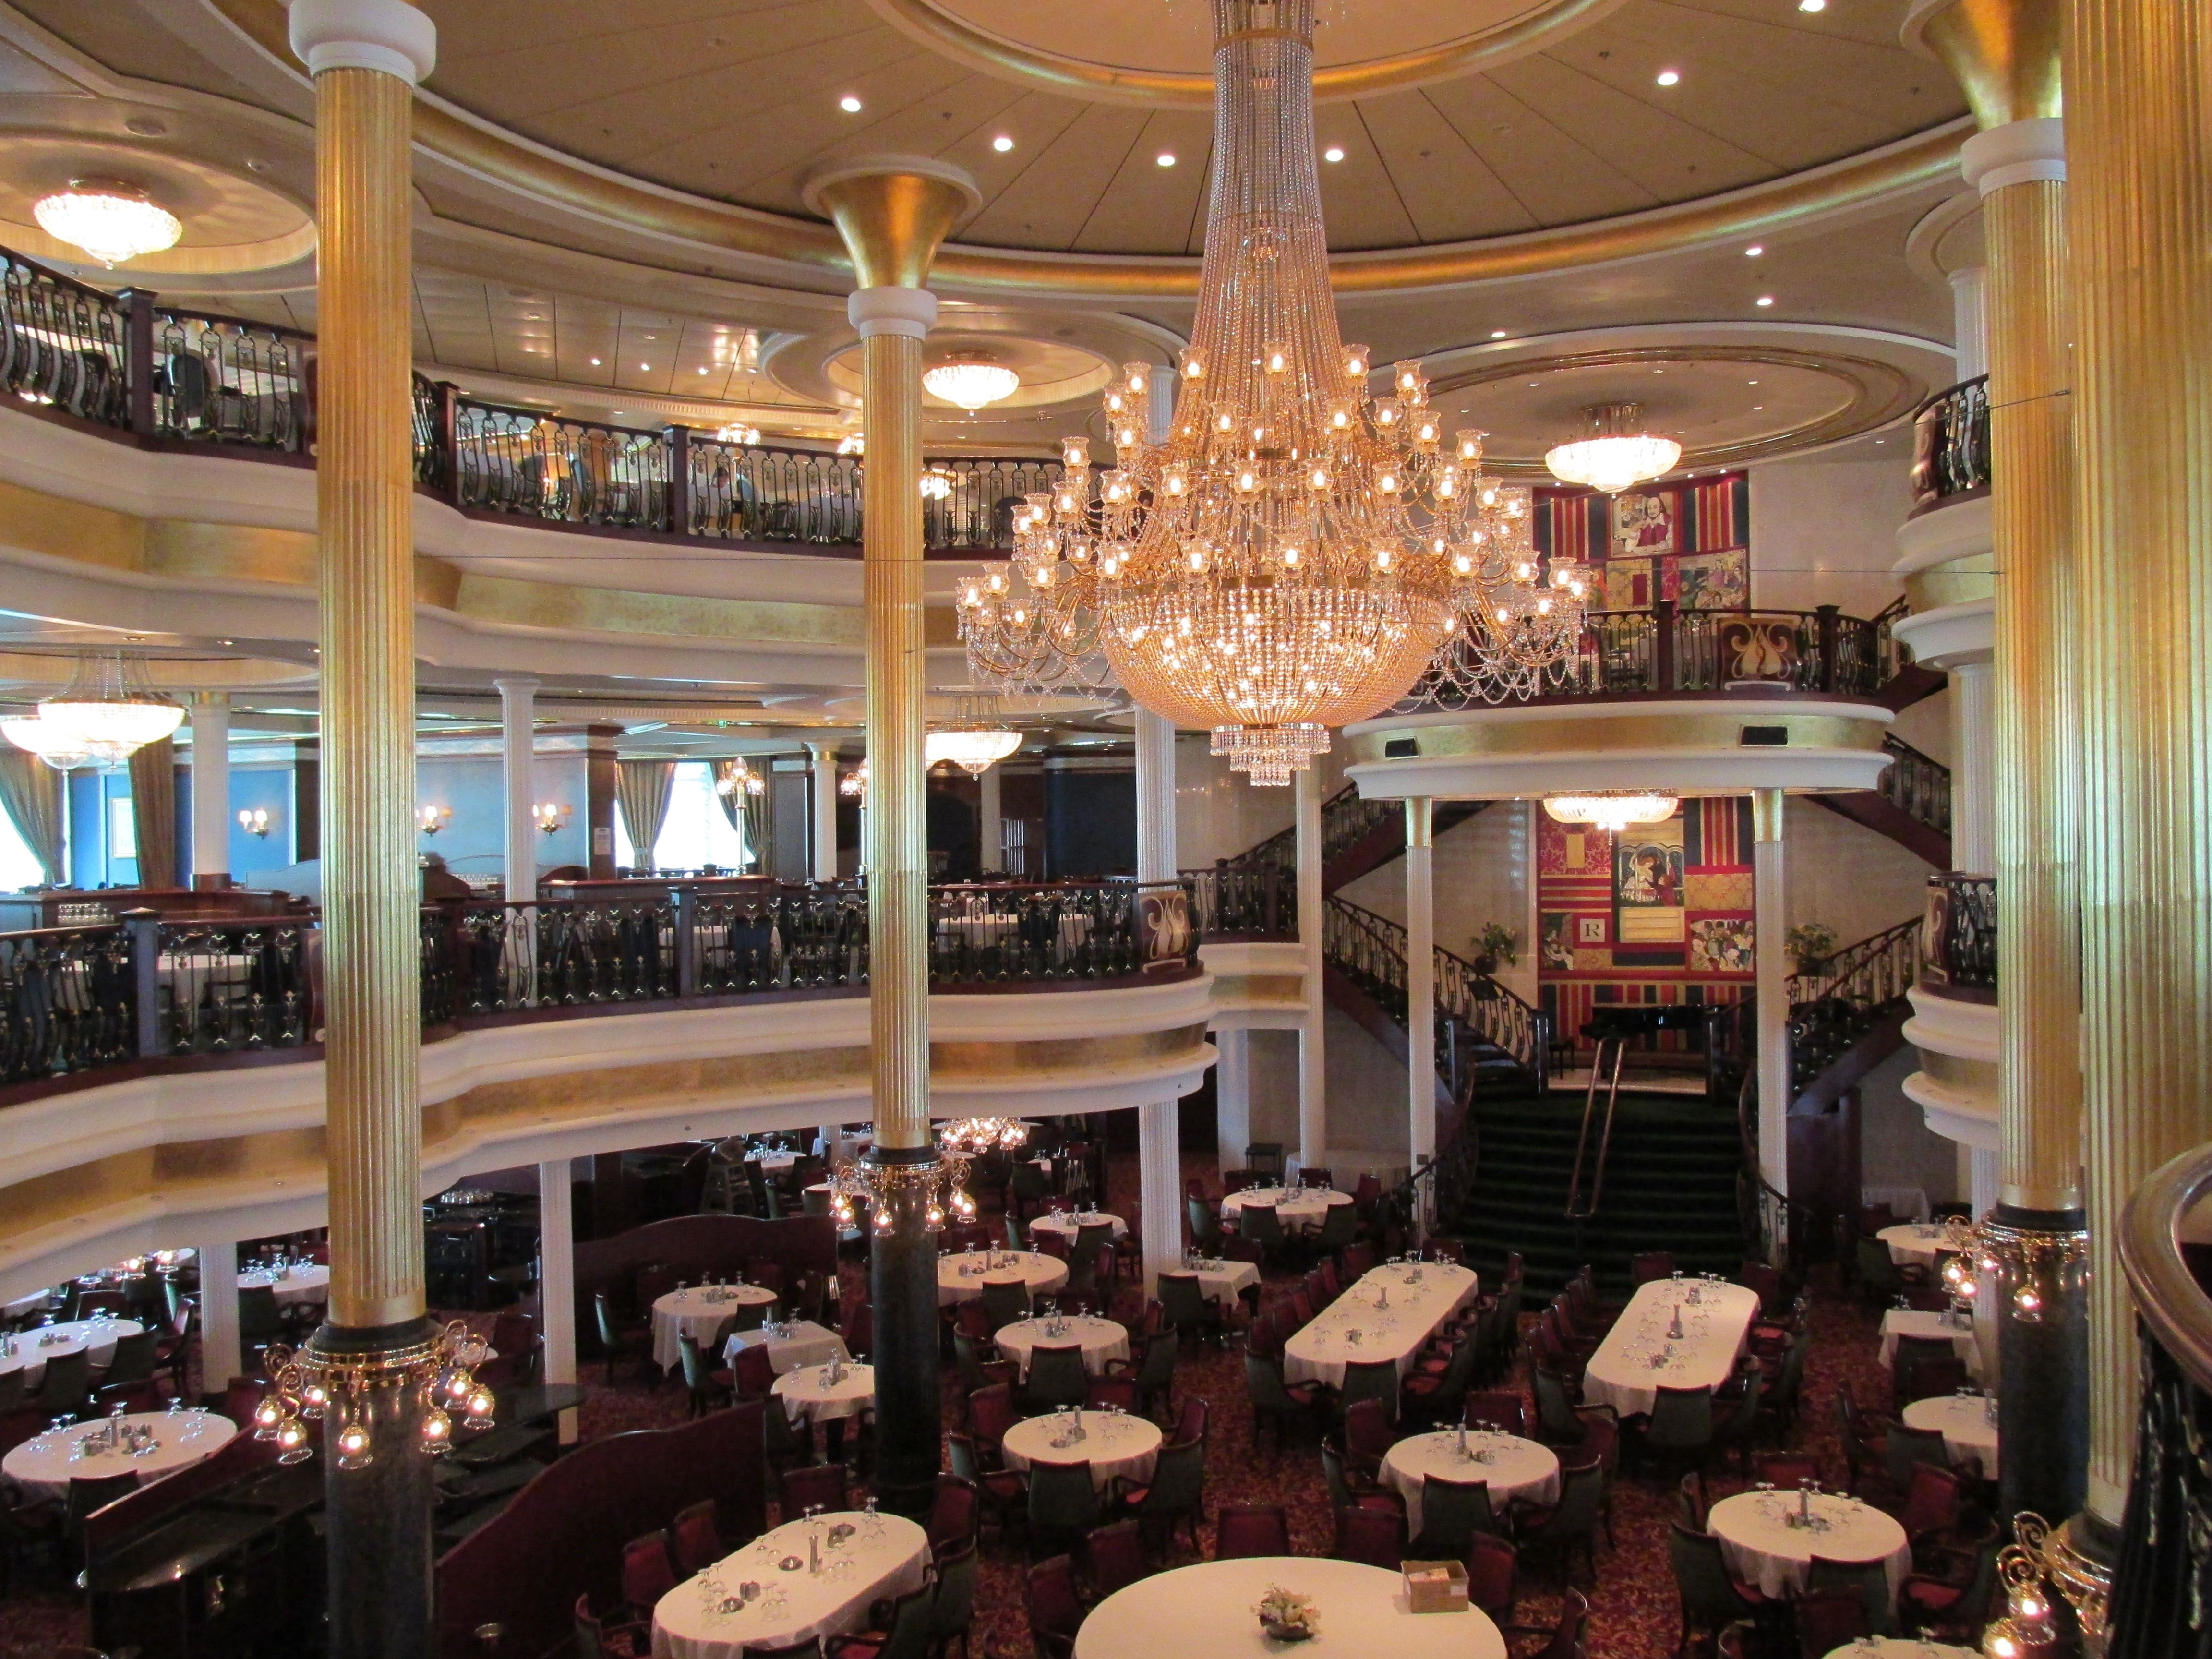 Independence Of The Seasthe Dining Room Rcl Independence Of Brilliant Explorer Of The Seas Dining Room Design Ideas